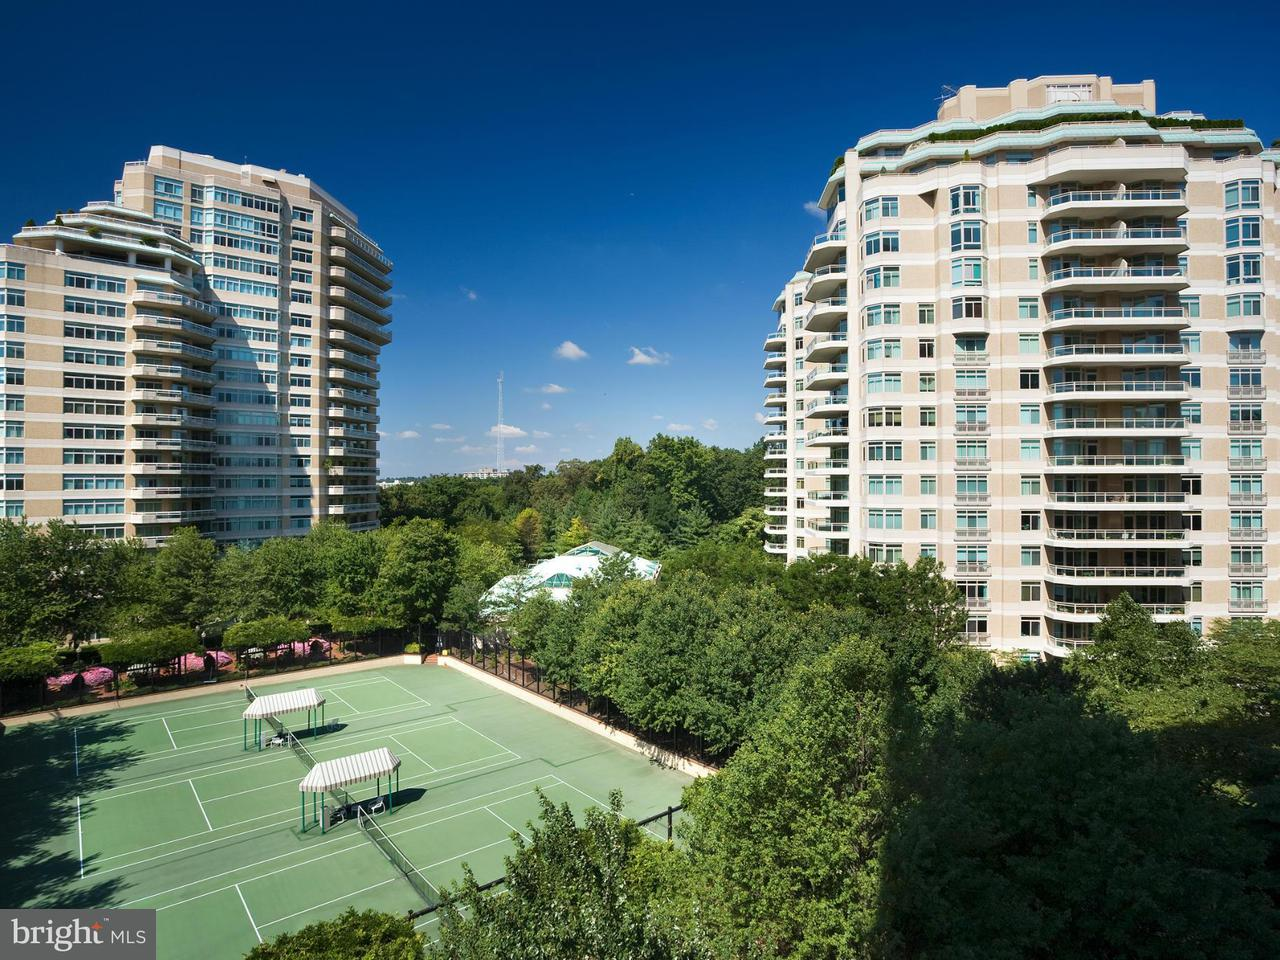 Condominium for Sale at 5610 WISCONSIN AVE #1102 5610 WISCONSIN AVE #1102 Chevy Chase, Maryland 20815 United States